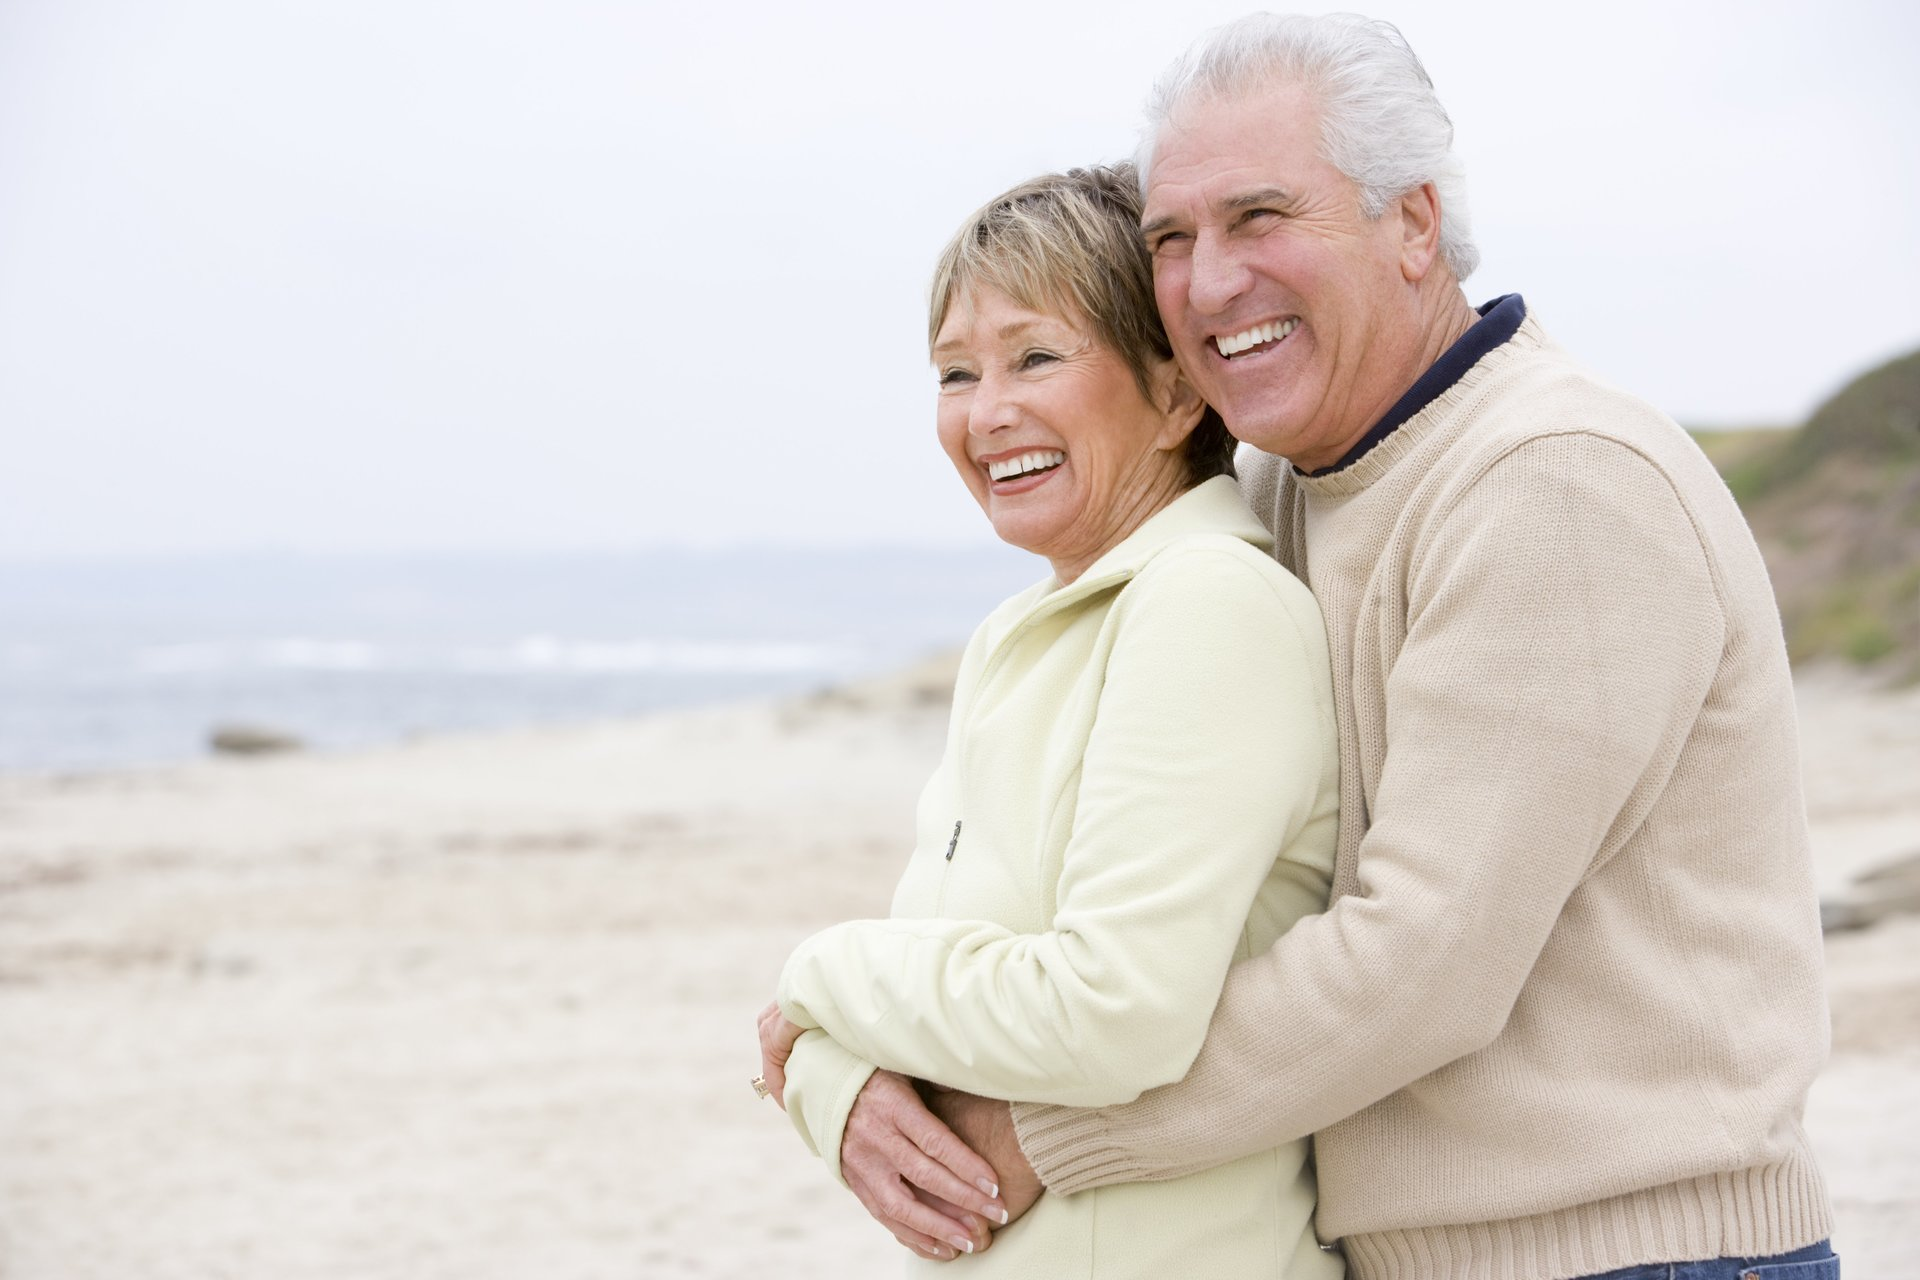 Most Reputable Senior Online Dating Site In Jacksonville